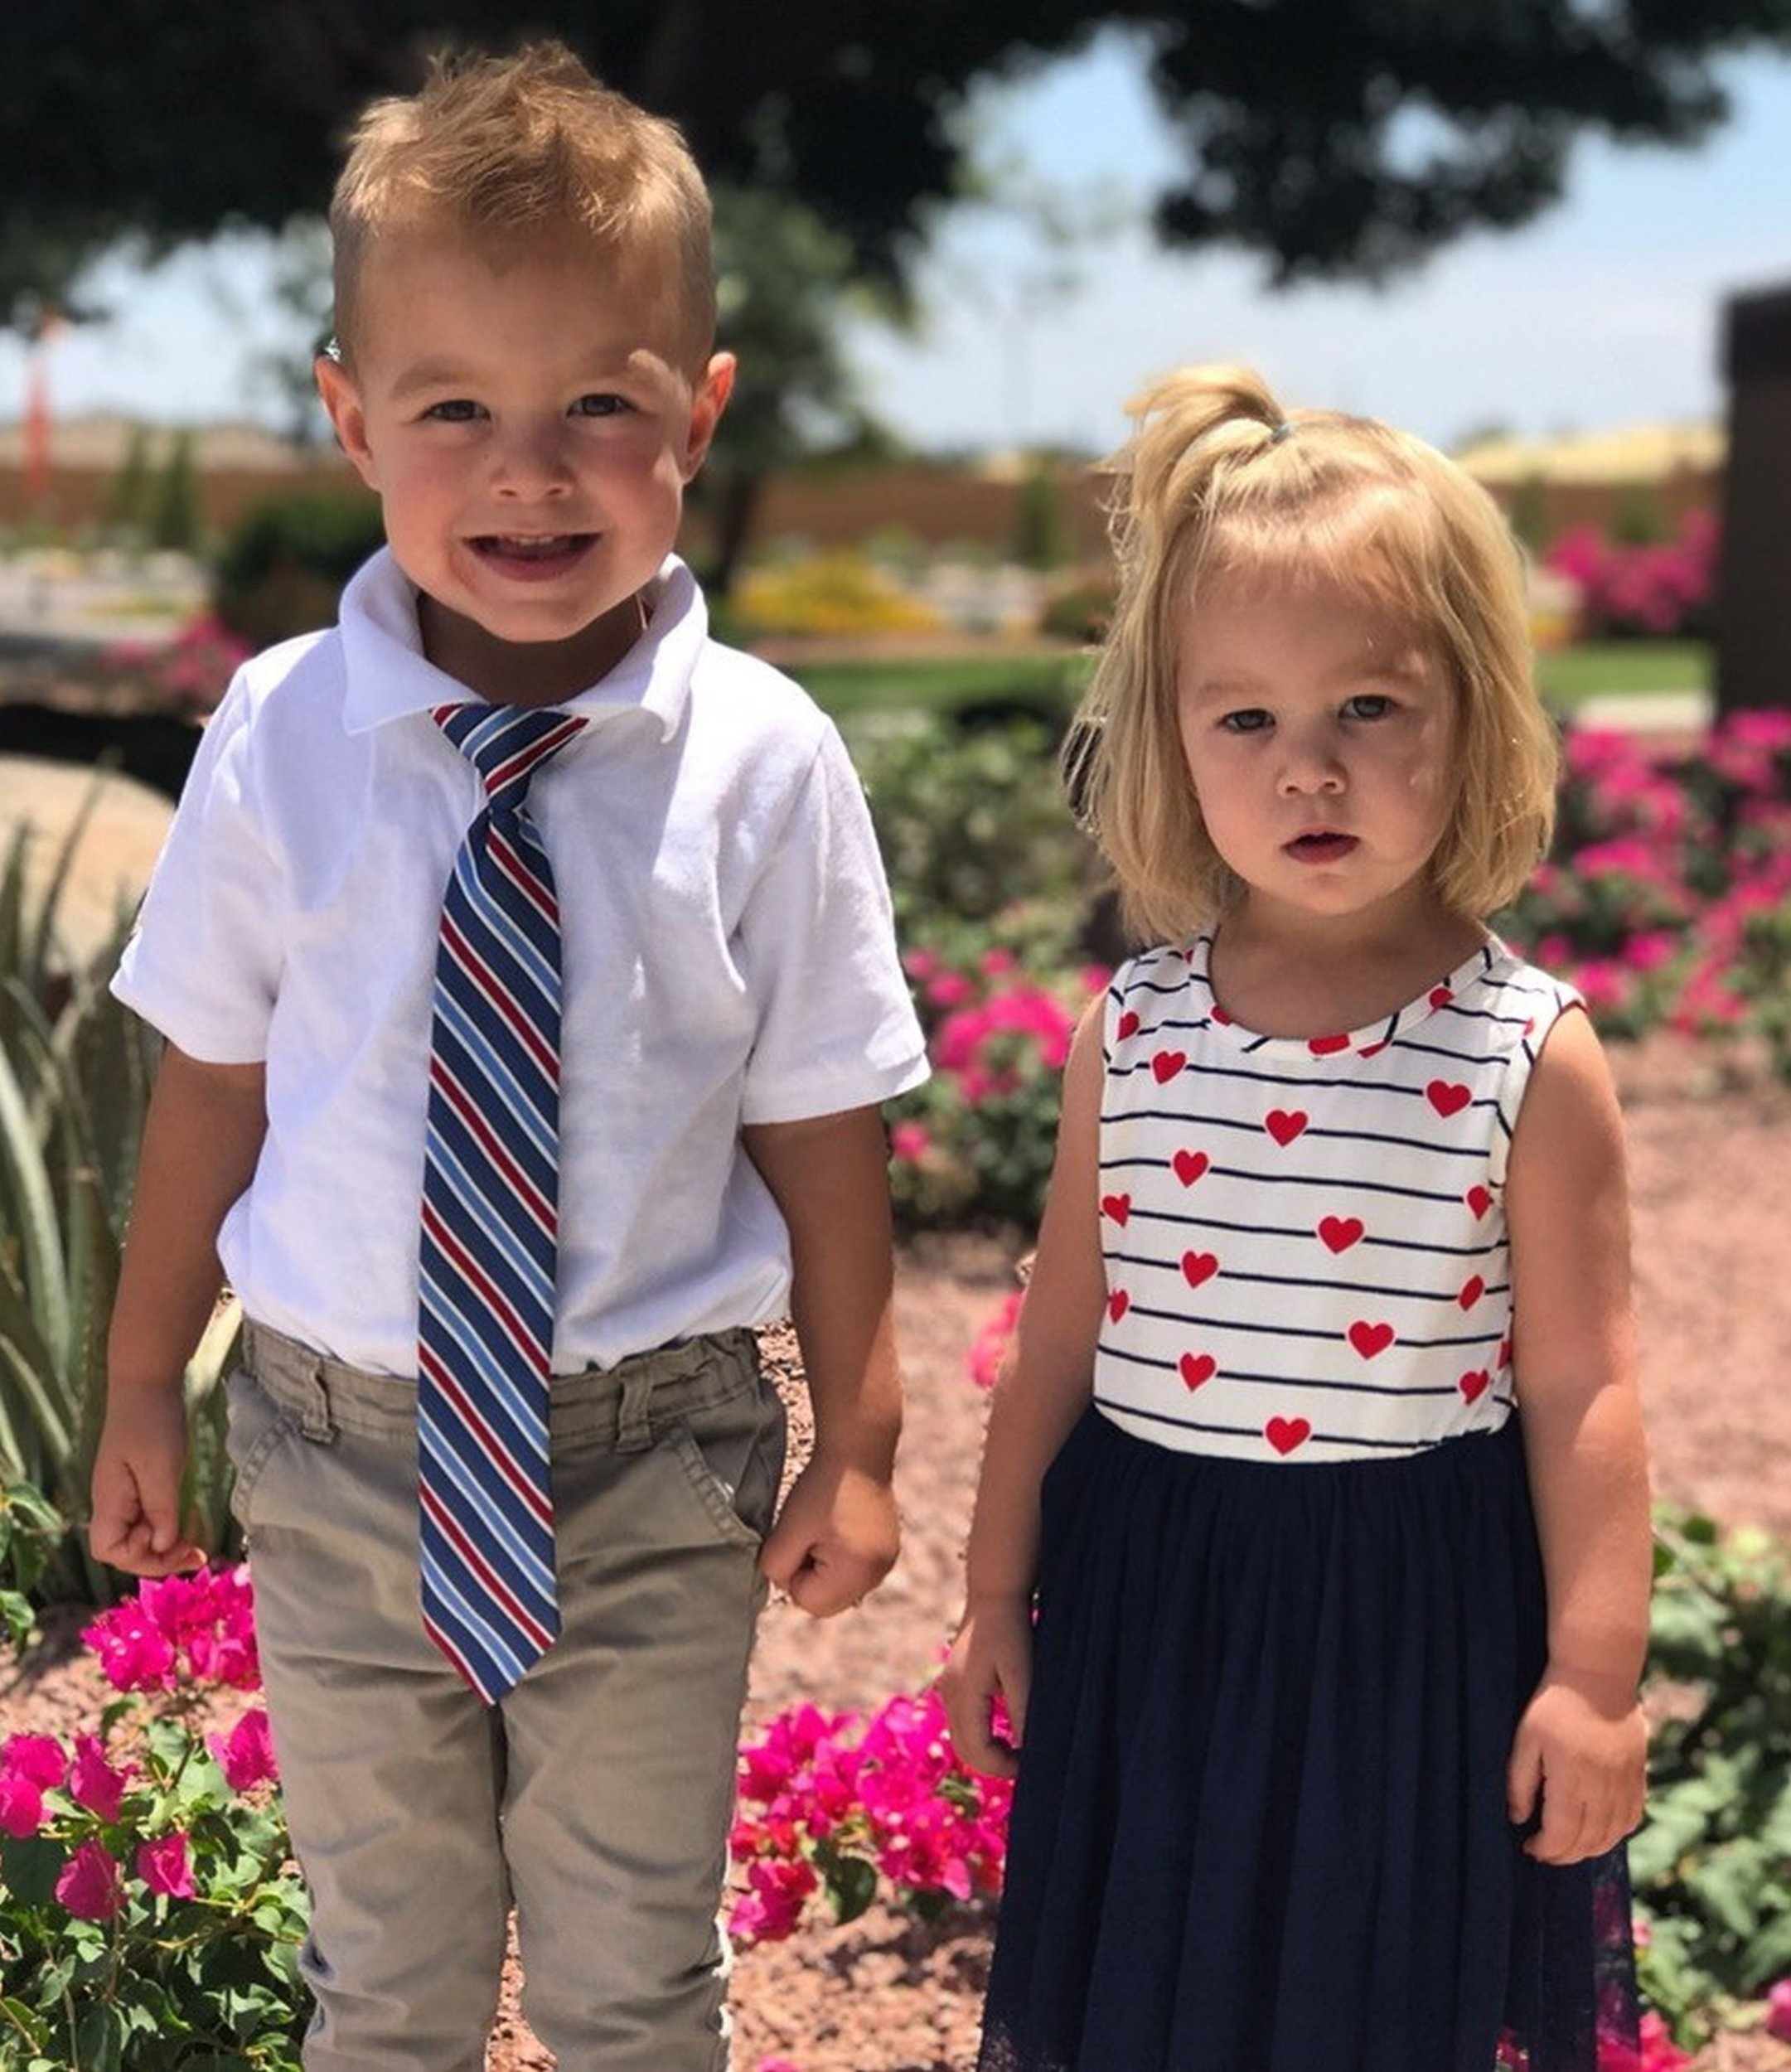 Little girl has to have hair cut short after toddler brother